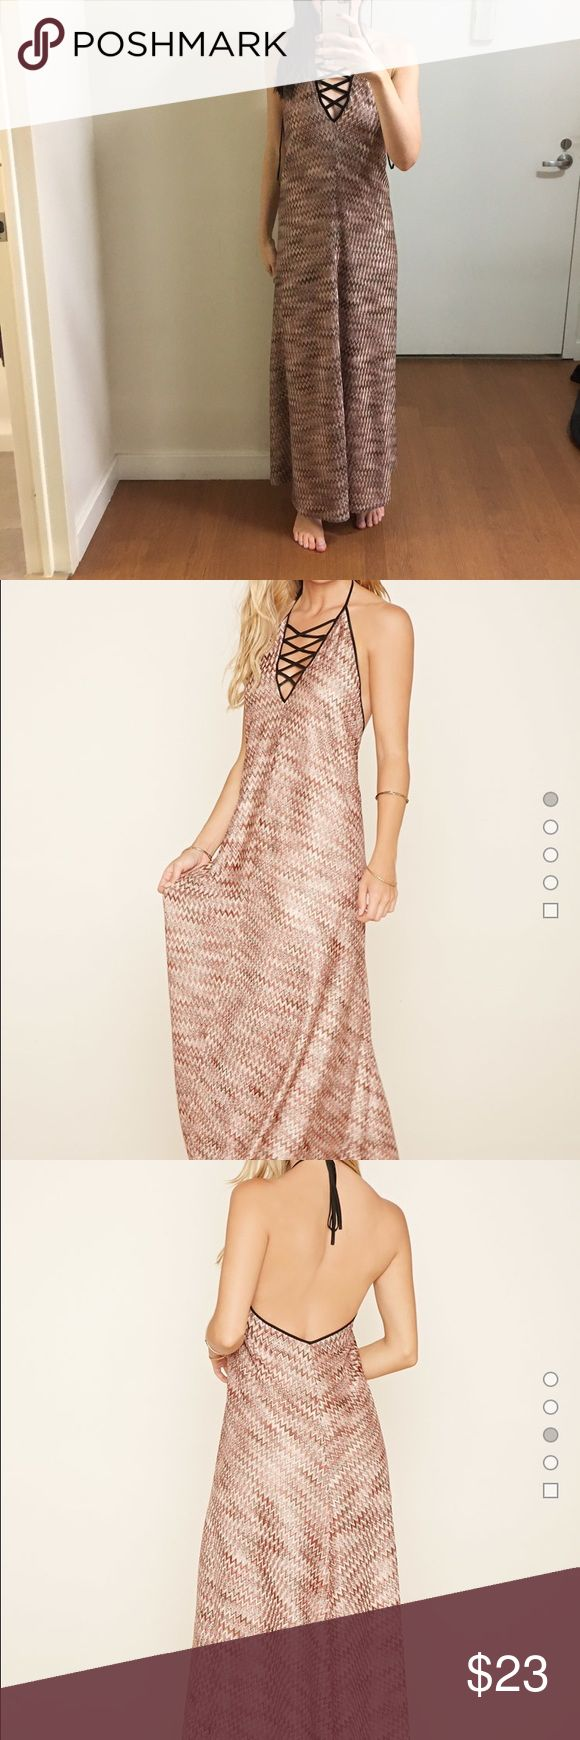 Chevron Halter Neck Maxi Dress Burgundy/taupe. New with tag. Forever 21 Dresses Maxi